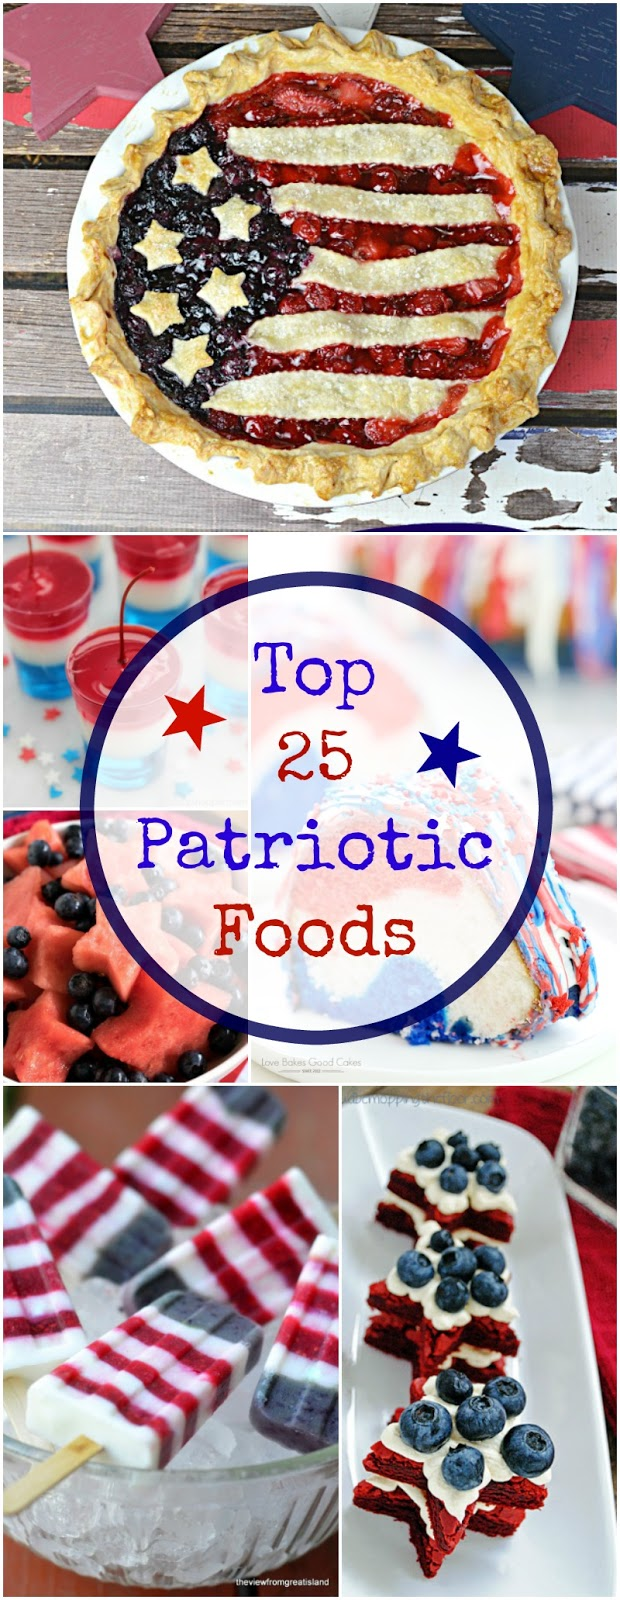 Top 25 Patriotic Foods!